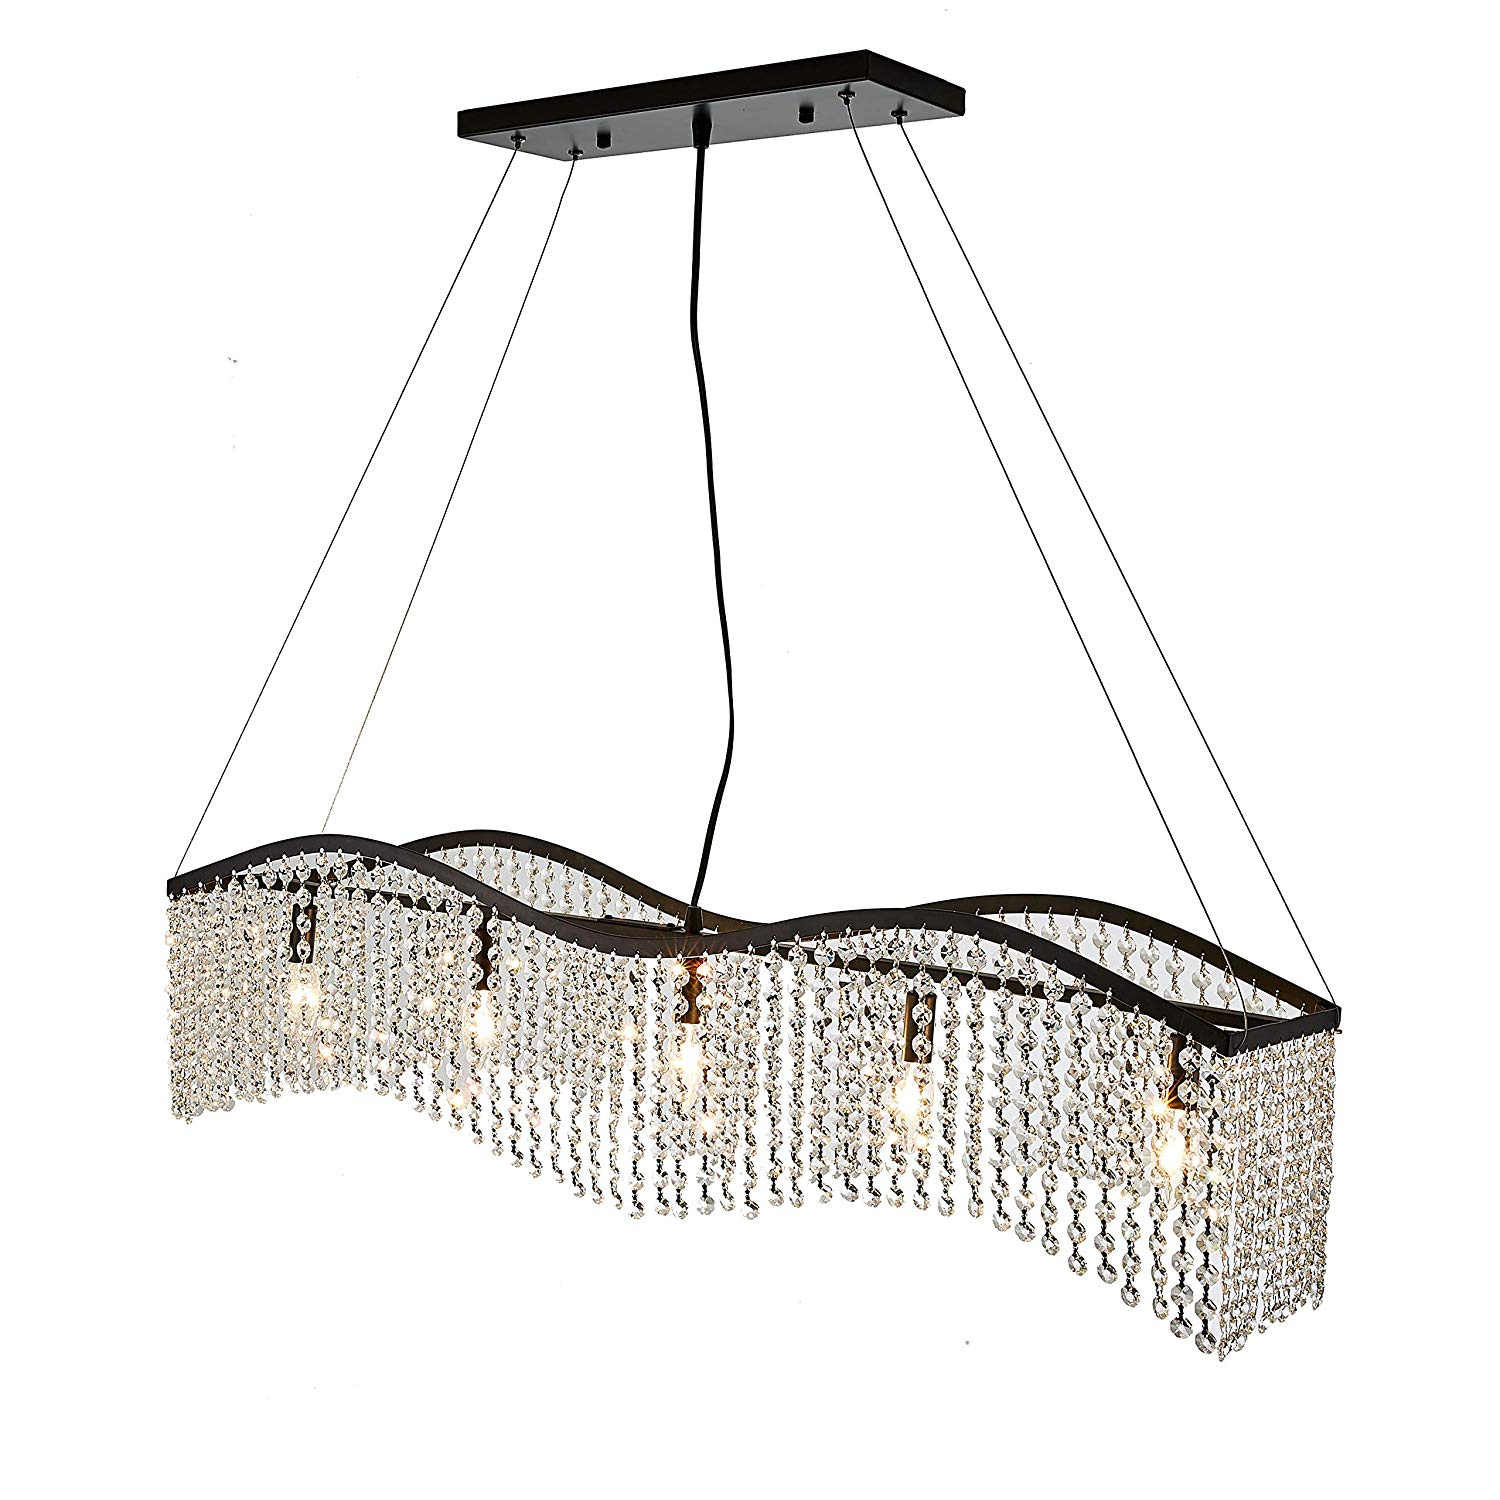 Ceiling Lights & Fans Chandeliers Modern Wave K9 Crystal Hanging Wire Ball Square Pendant Lamp Lighting Fixture Rain Drop Curtain Glass Chandelier Led Light